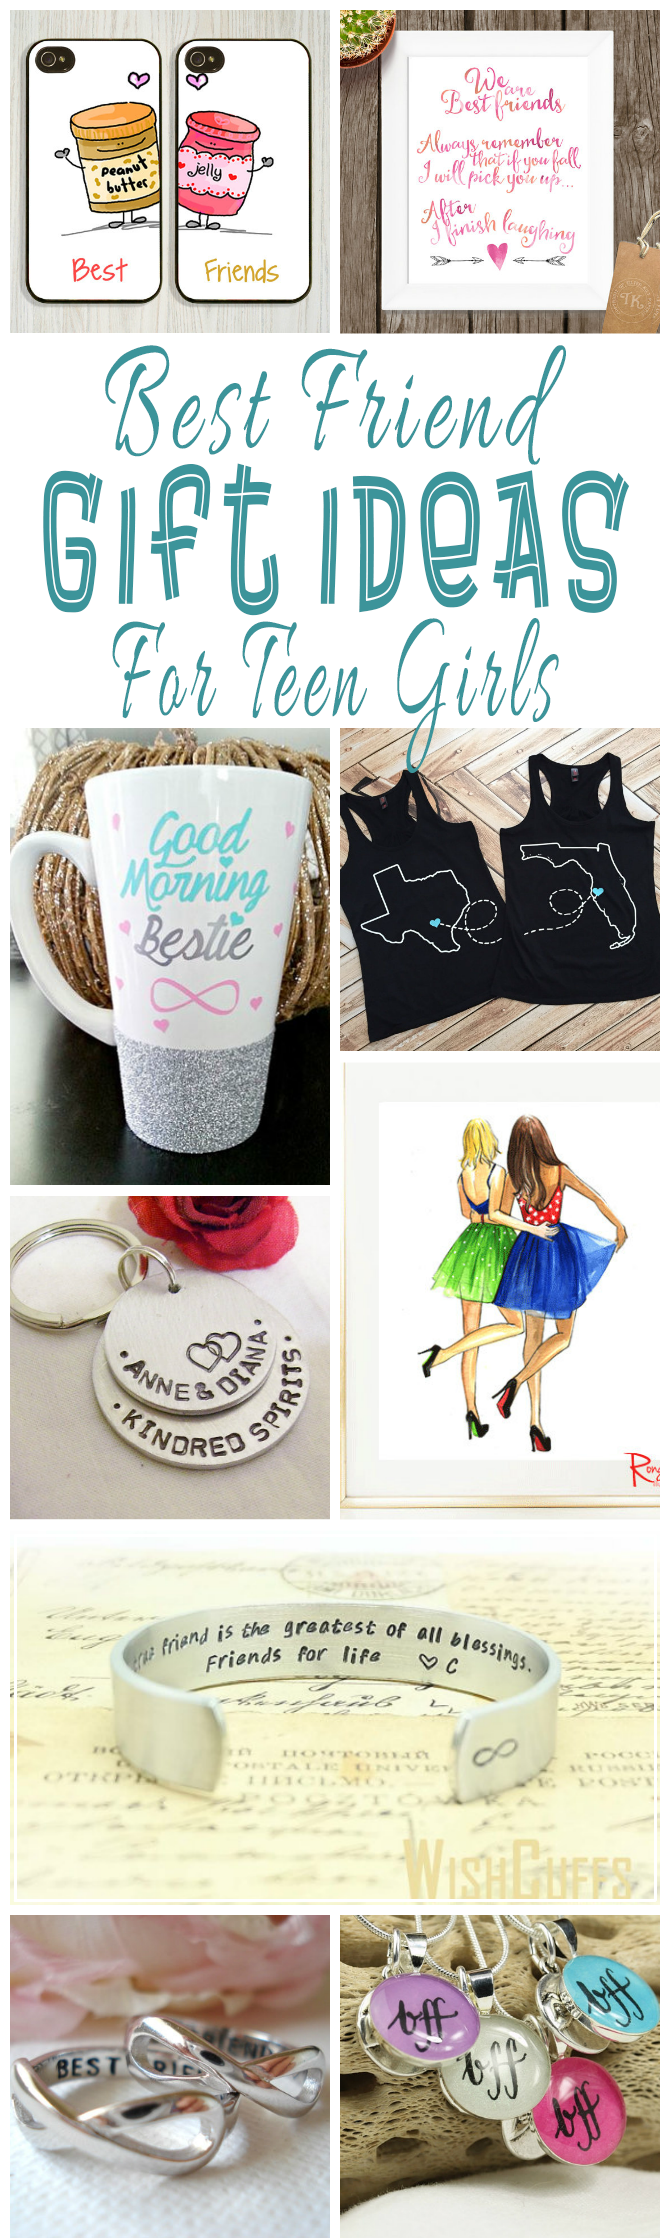 Best Friend Gift Ideas For Teens Birthday Gifts For Best